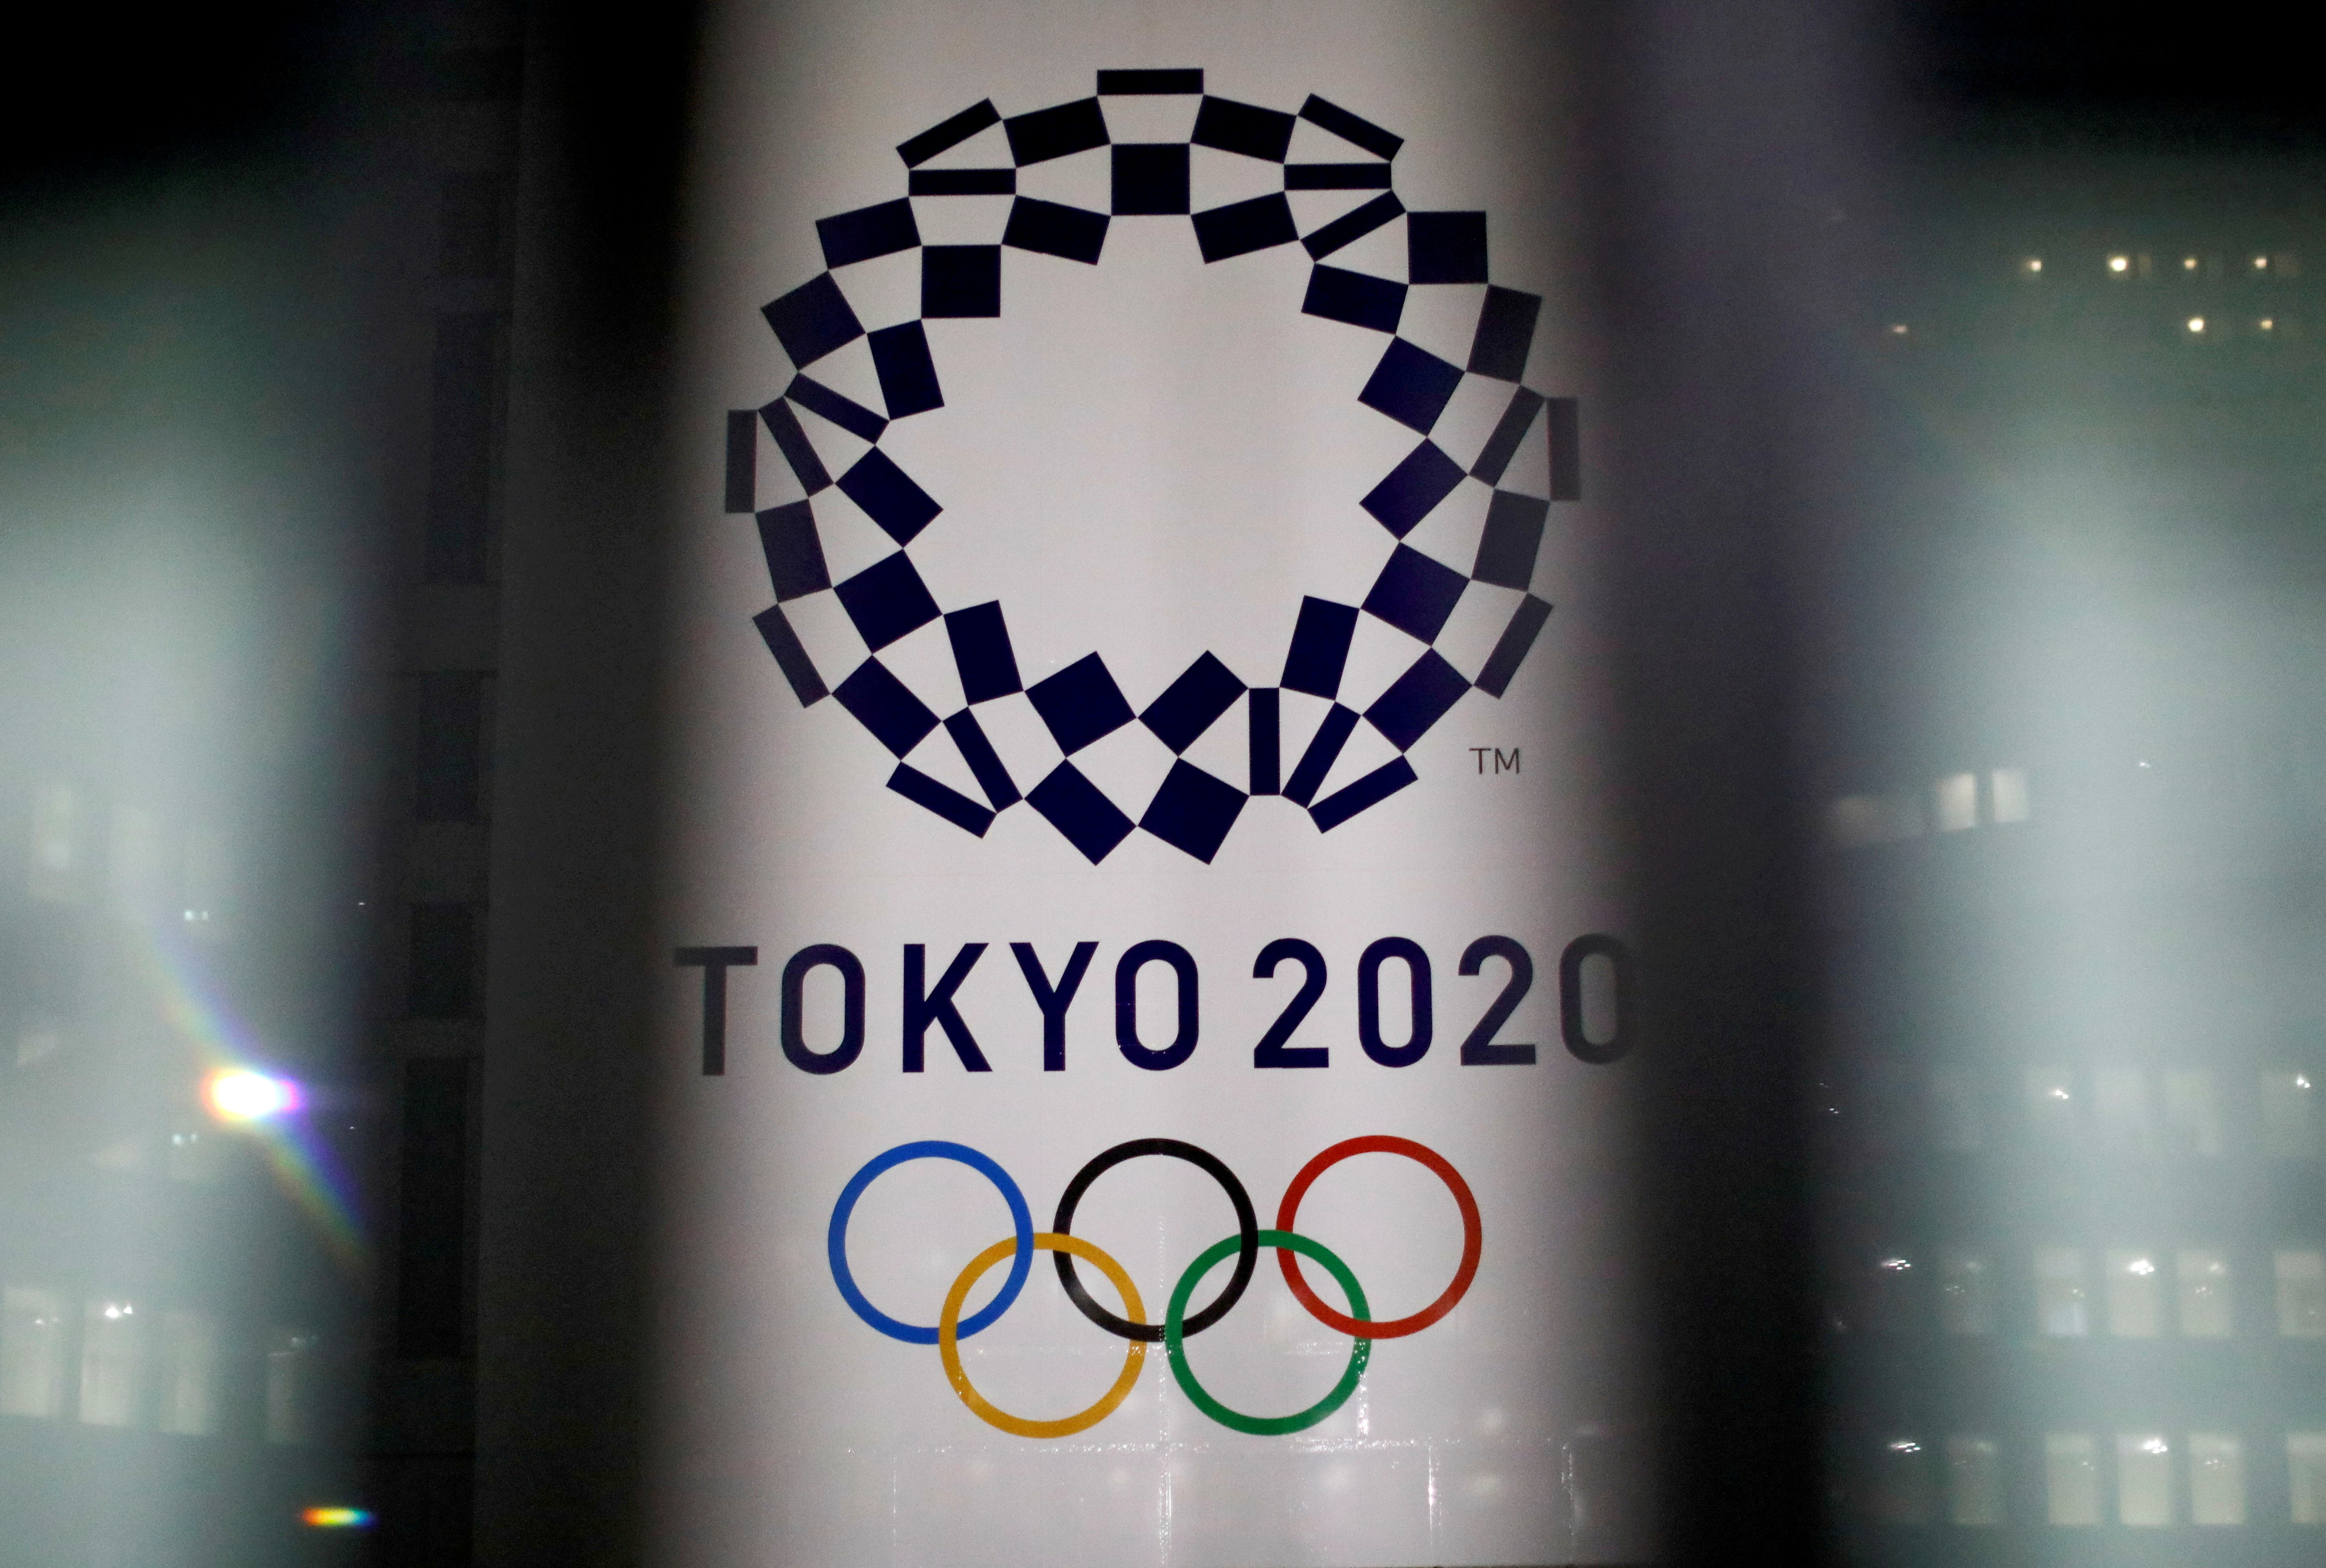 The logo of the Tokyo Olympic Games, at the Tokyo Metropolitan Government Office building in Tokyo, Japan, January 22, 2021. REUTERS/Issei Kato/File Photo